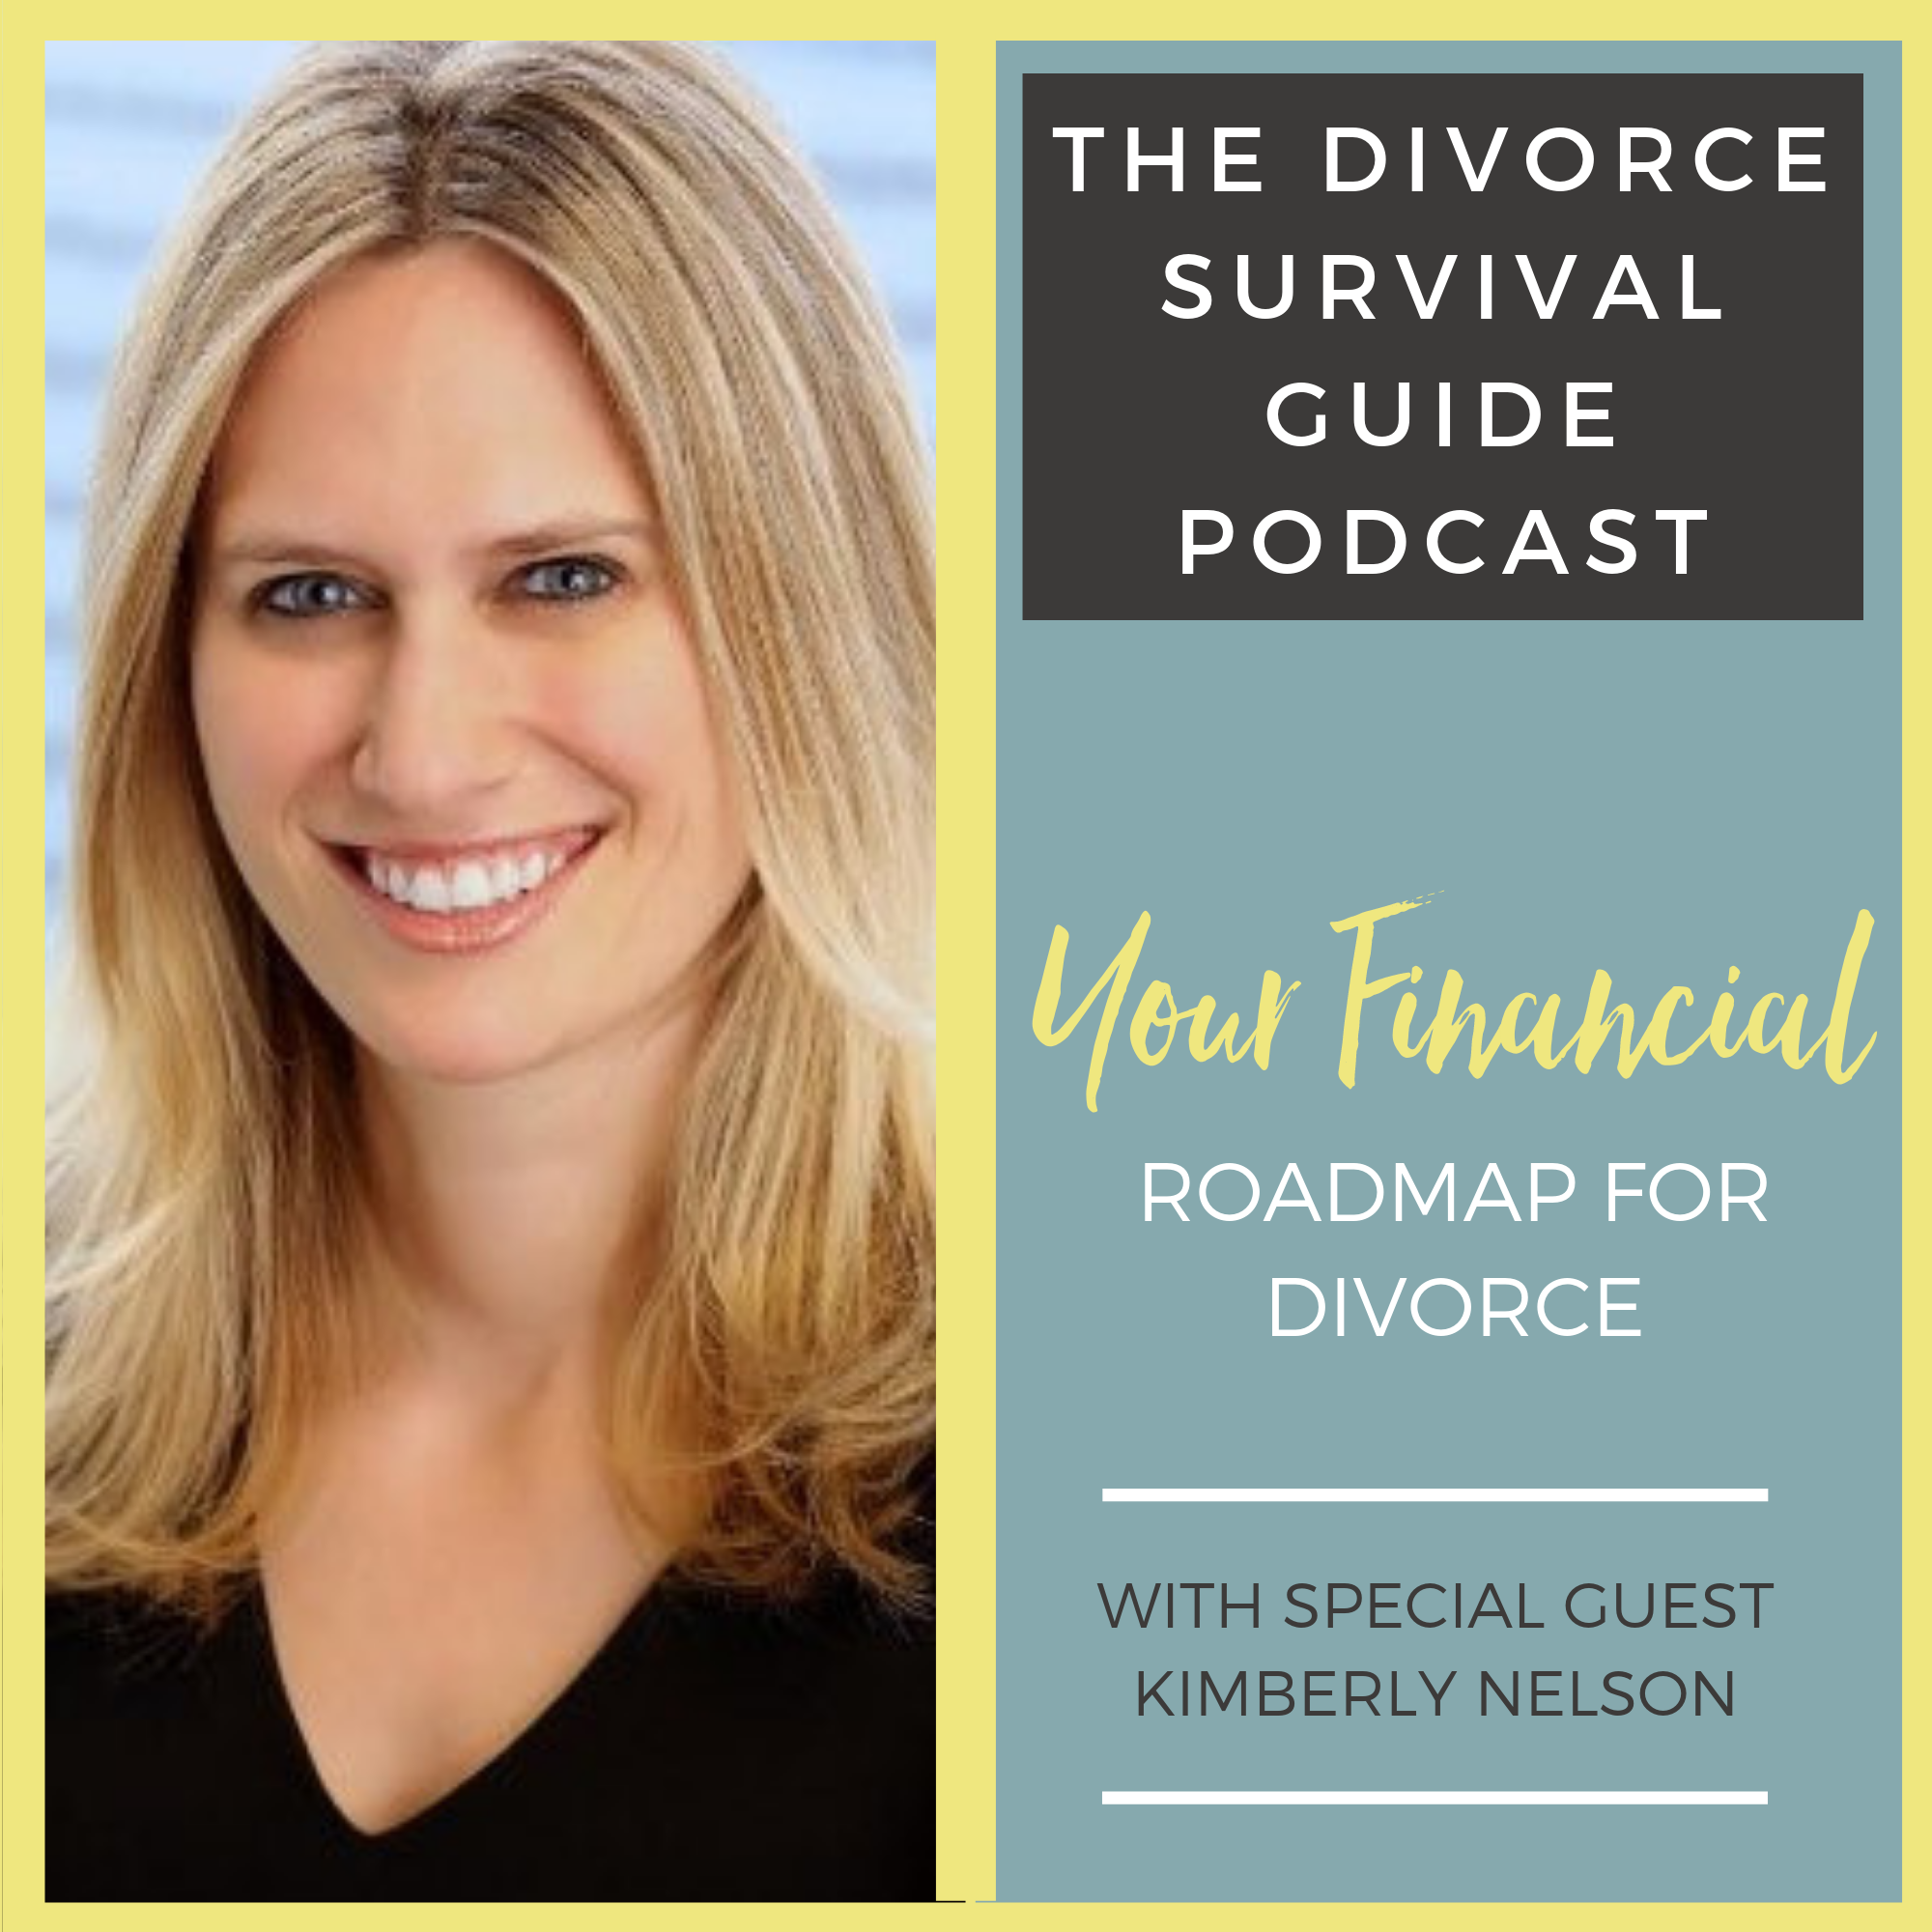 The Divorce Survival Guide Podcast - Your Financial Roadmap for Divorce with Kimberly Nelson